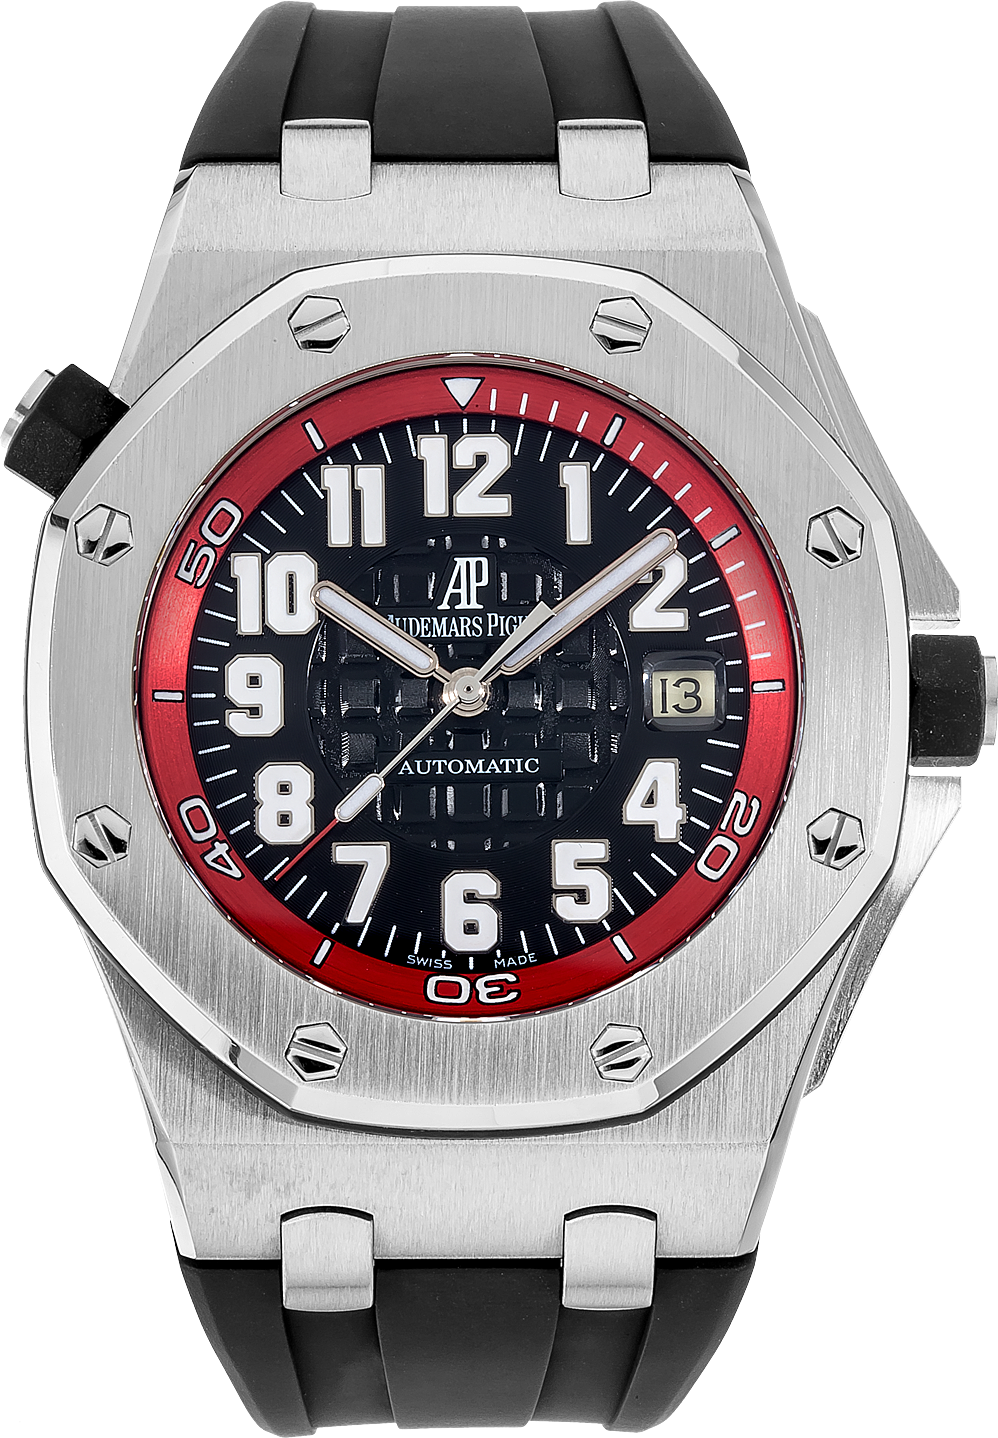 Audemars Piguet Royal Oak Offshore Red Scuba 15701ST.OO.D002CA.03